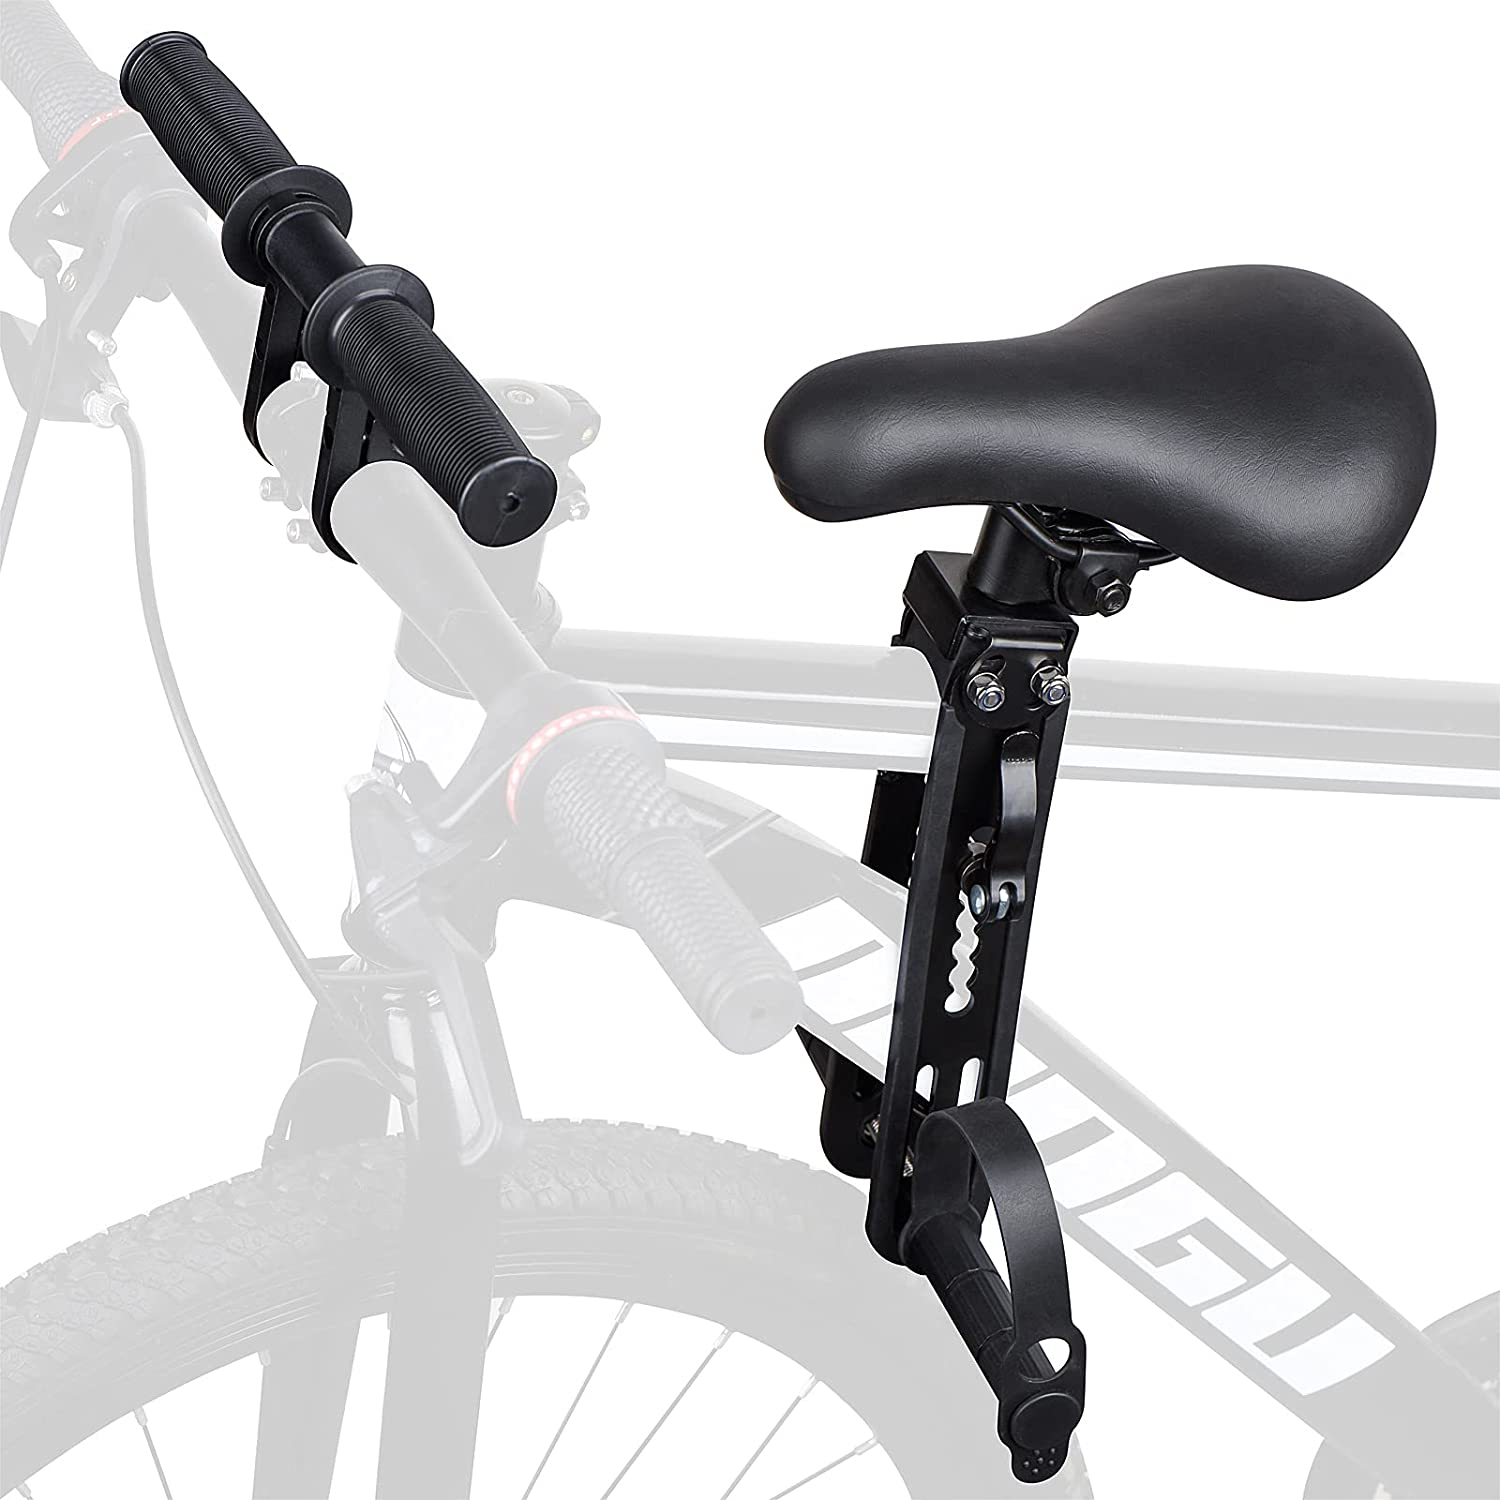 Kabandn Kids Bike Seat and Handlebar Pack, Front Mounted Child Bike Seat for Children 2-5 Year-Old(Up to 48 Pounds), Kids Toddler Bicycle Seat Bike Accessories for Adult Bikes, All MTB Mountain Bikes